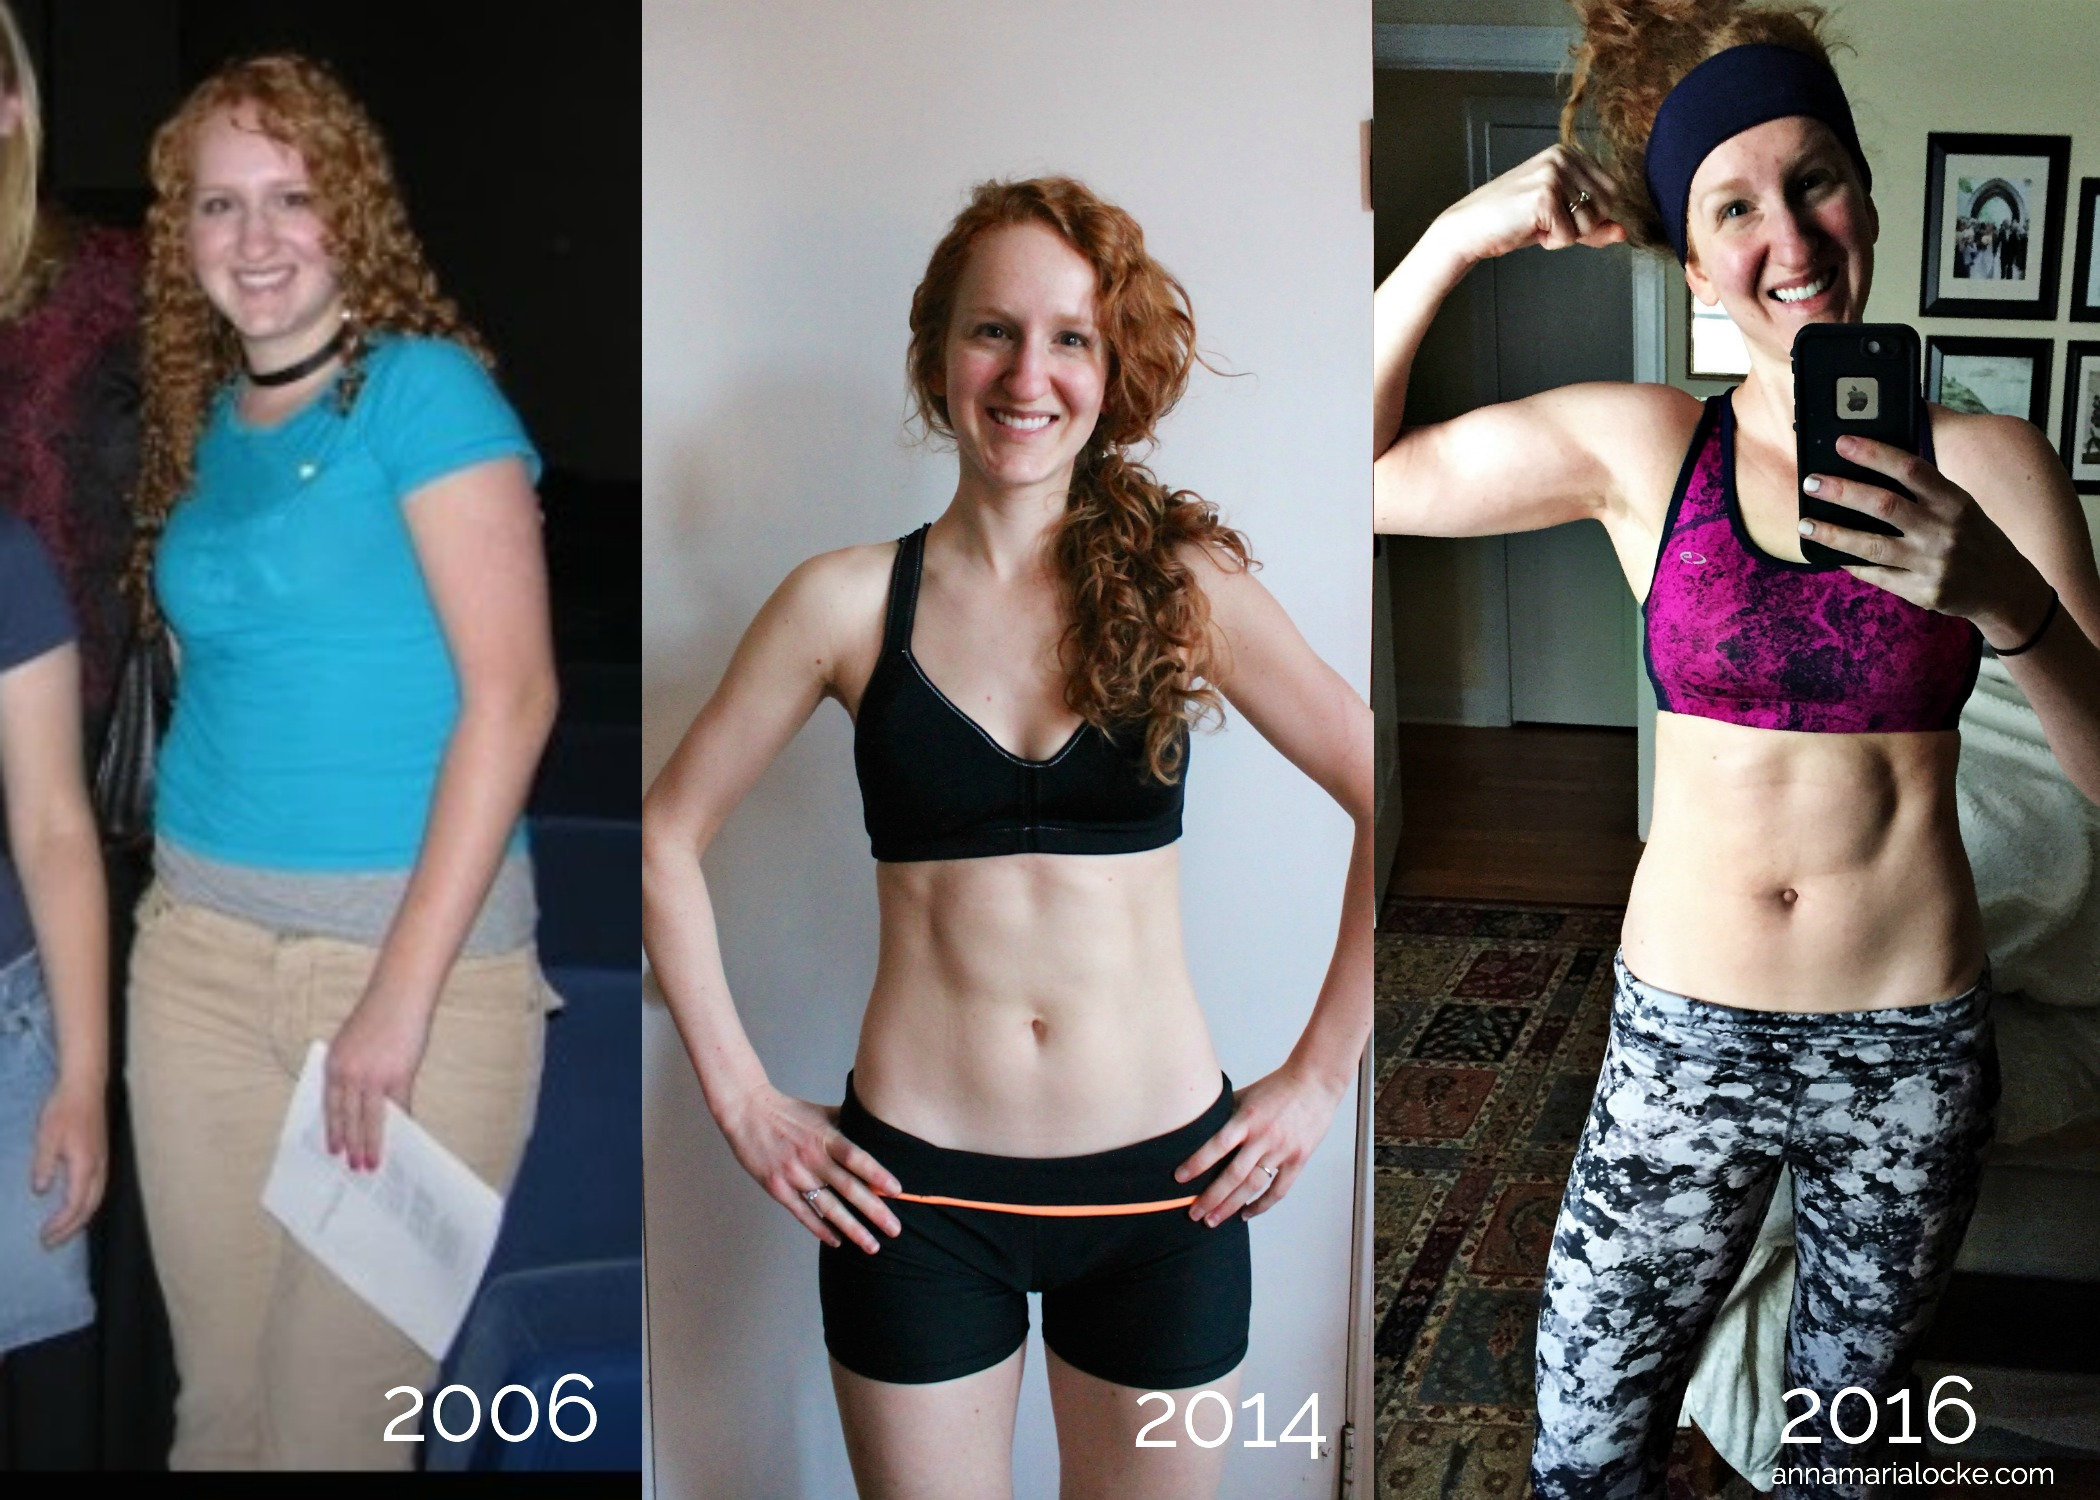 Me at my heaviest weight, lightest weight, and today...somewhere in between but in the best shape of my life.